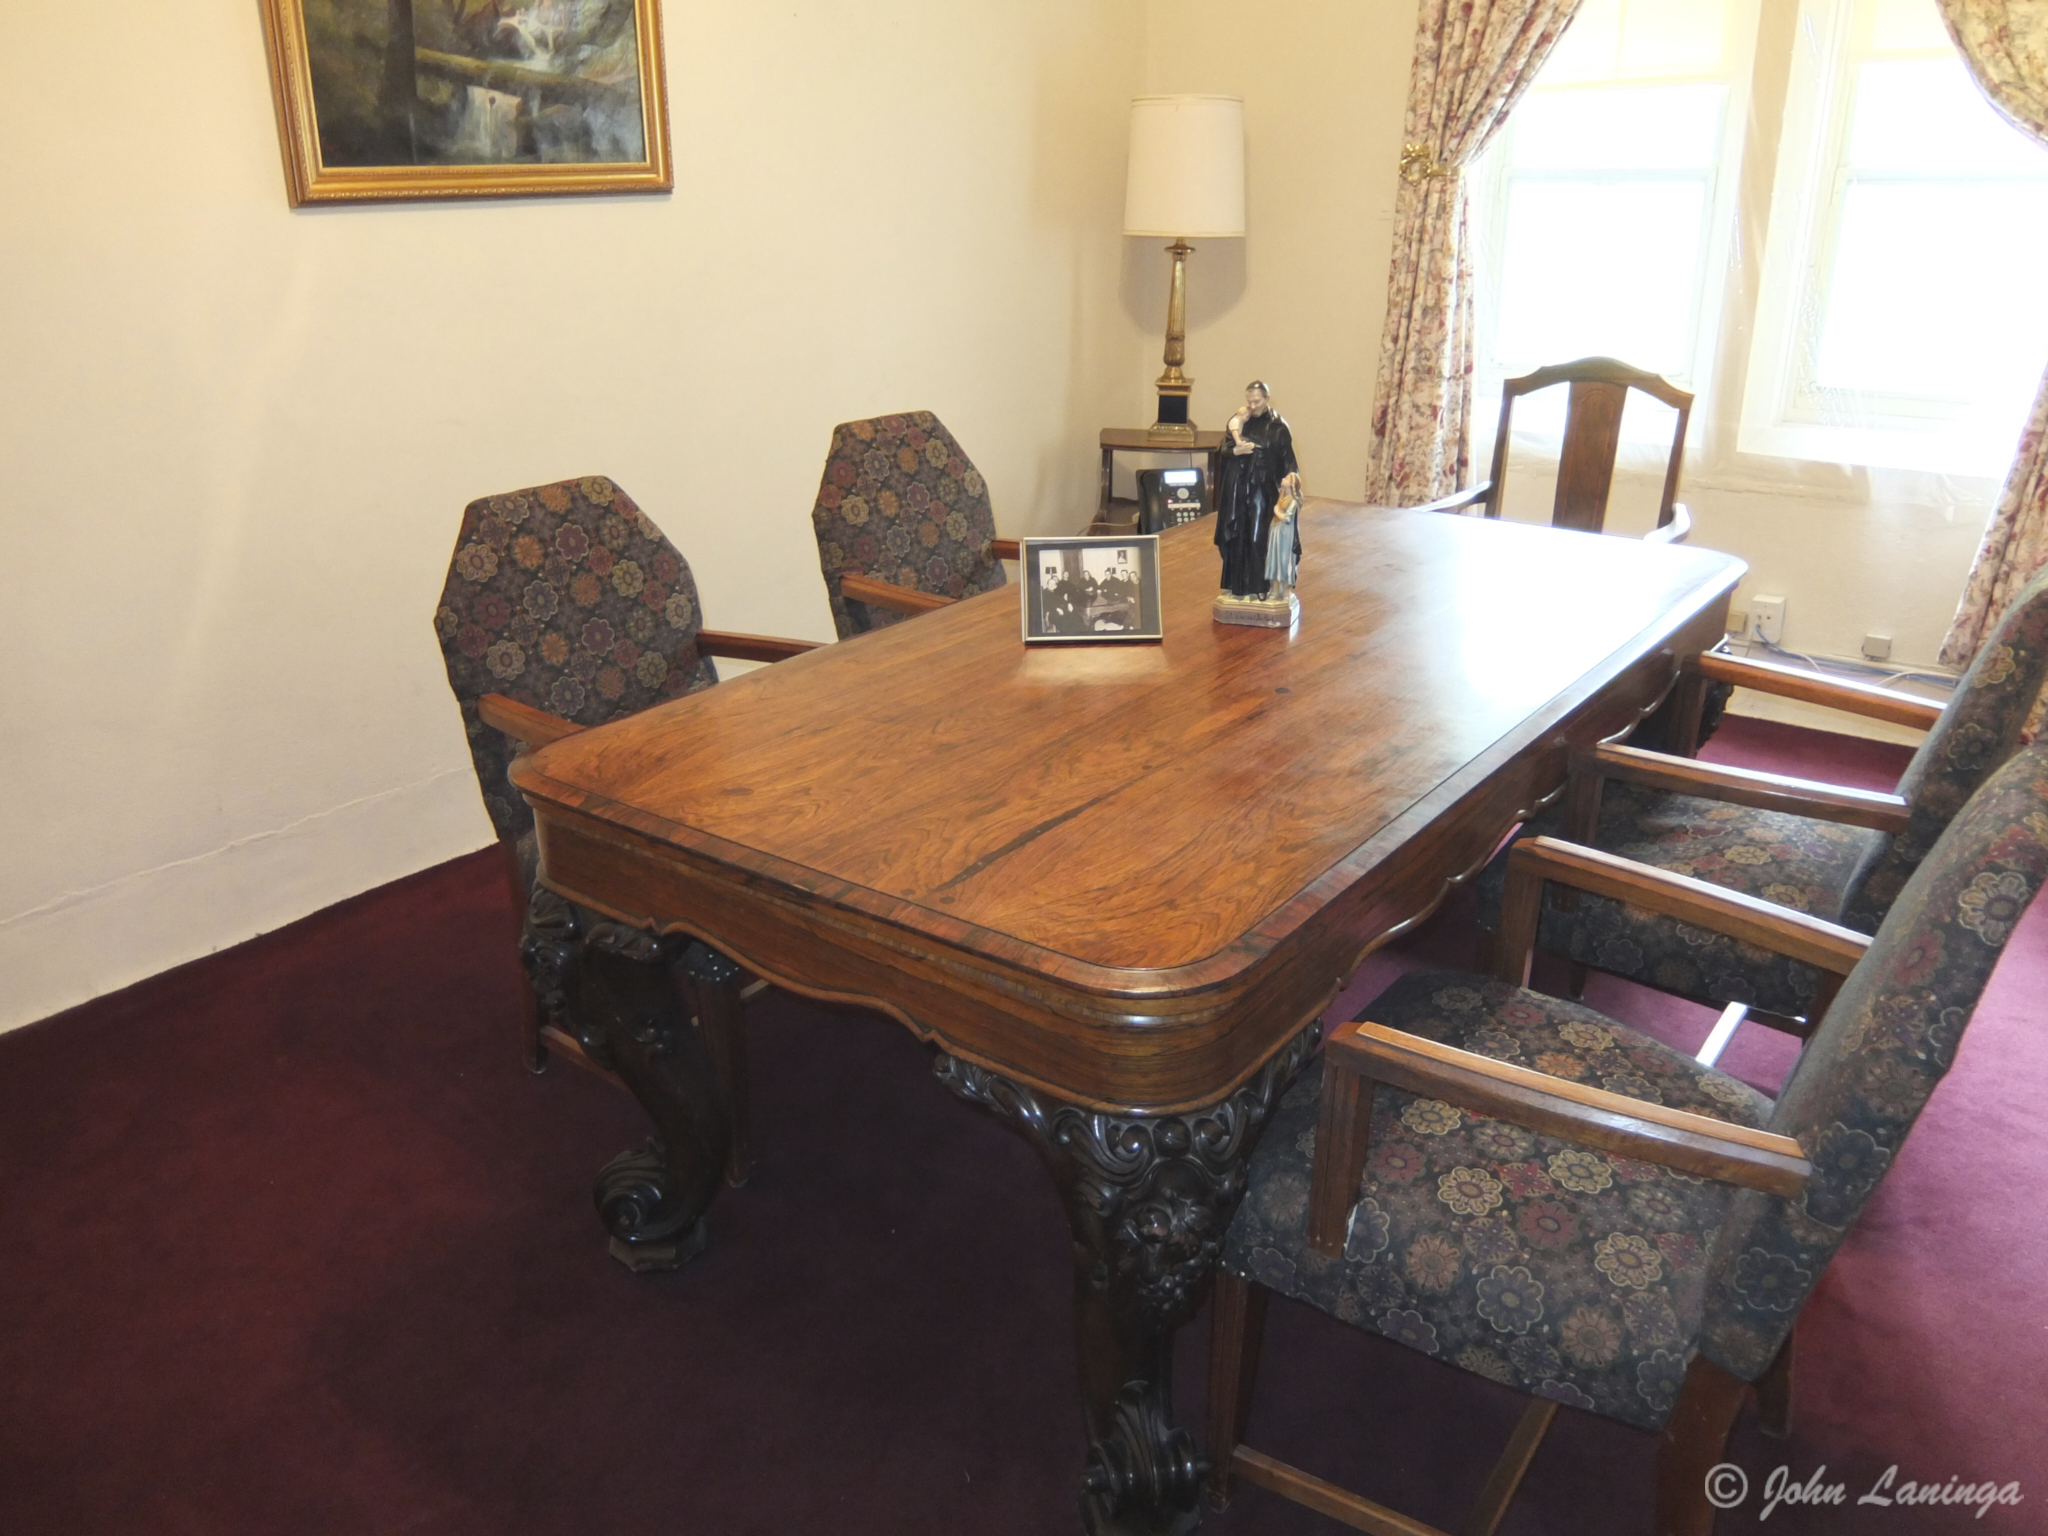 This table once was a square grand piano!